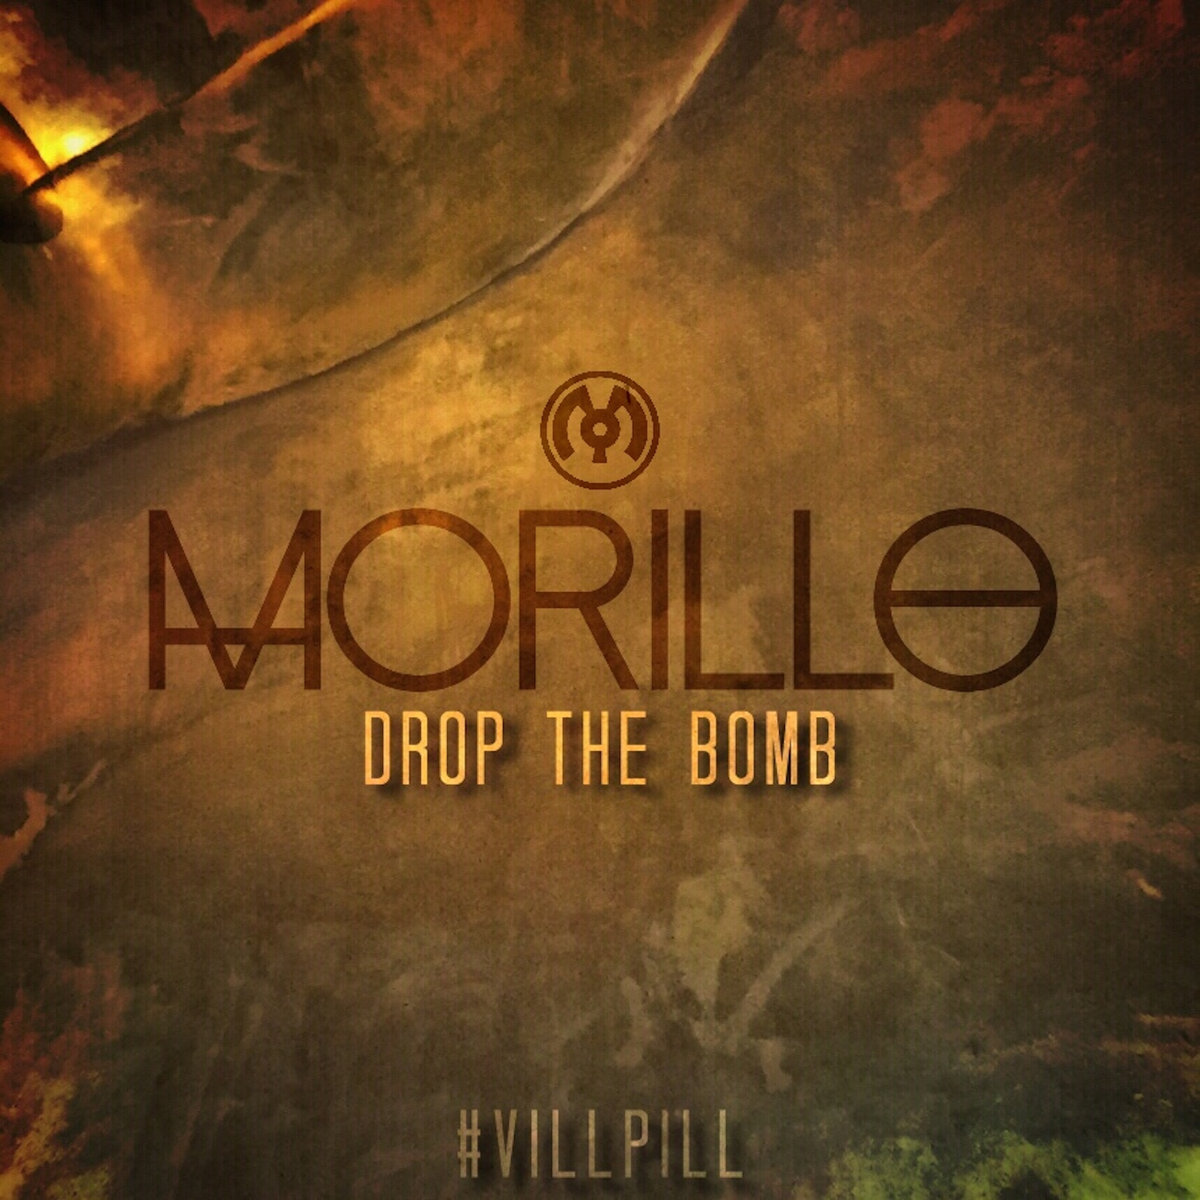 Morillo - Drop the Bomb @ 'Drop the Bomb' album (electronic, dubstep)